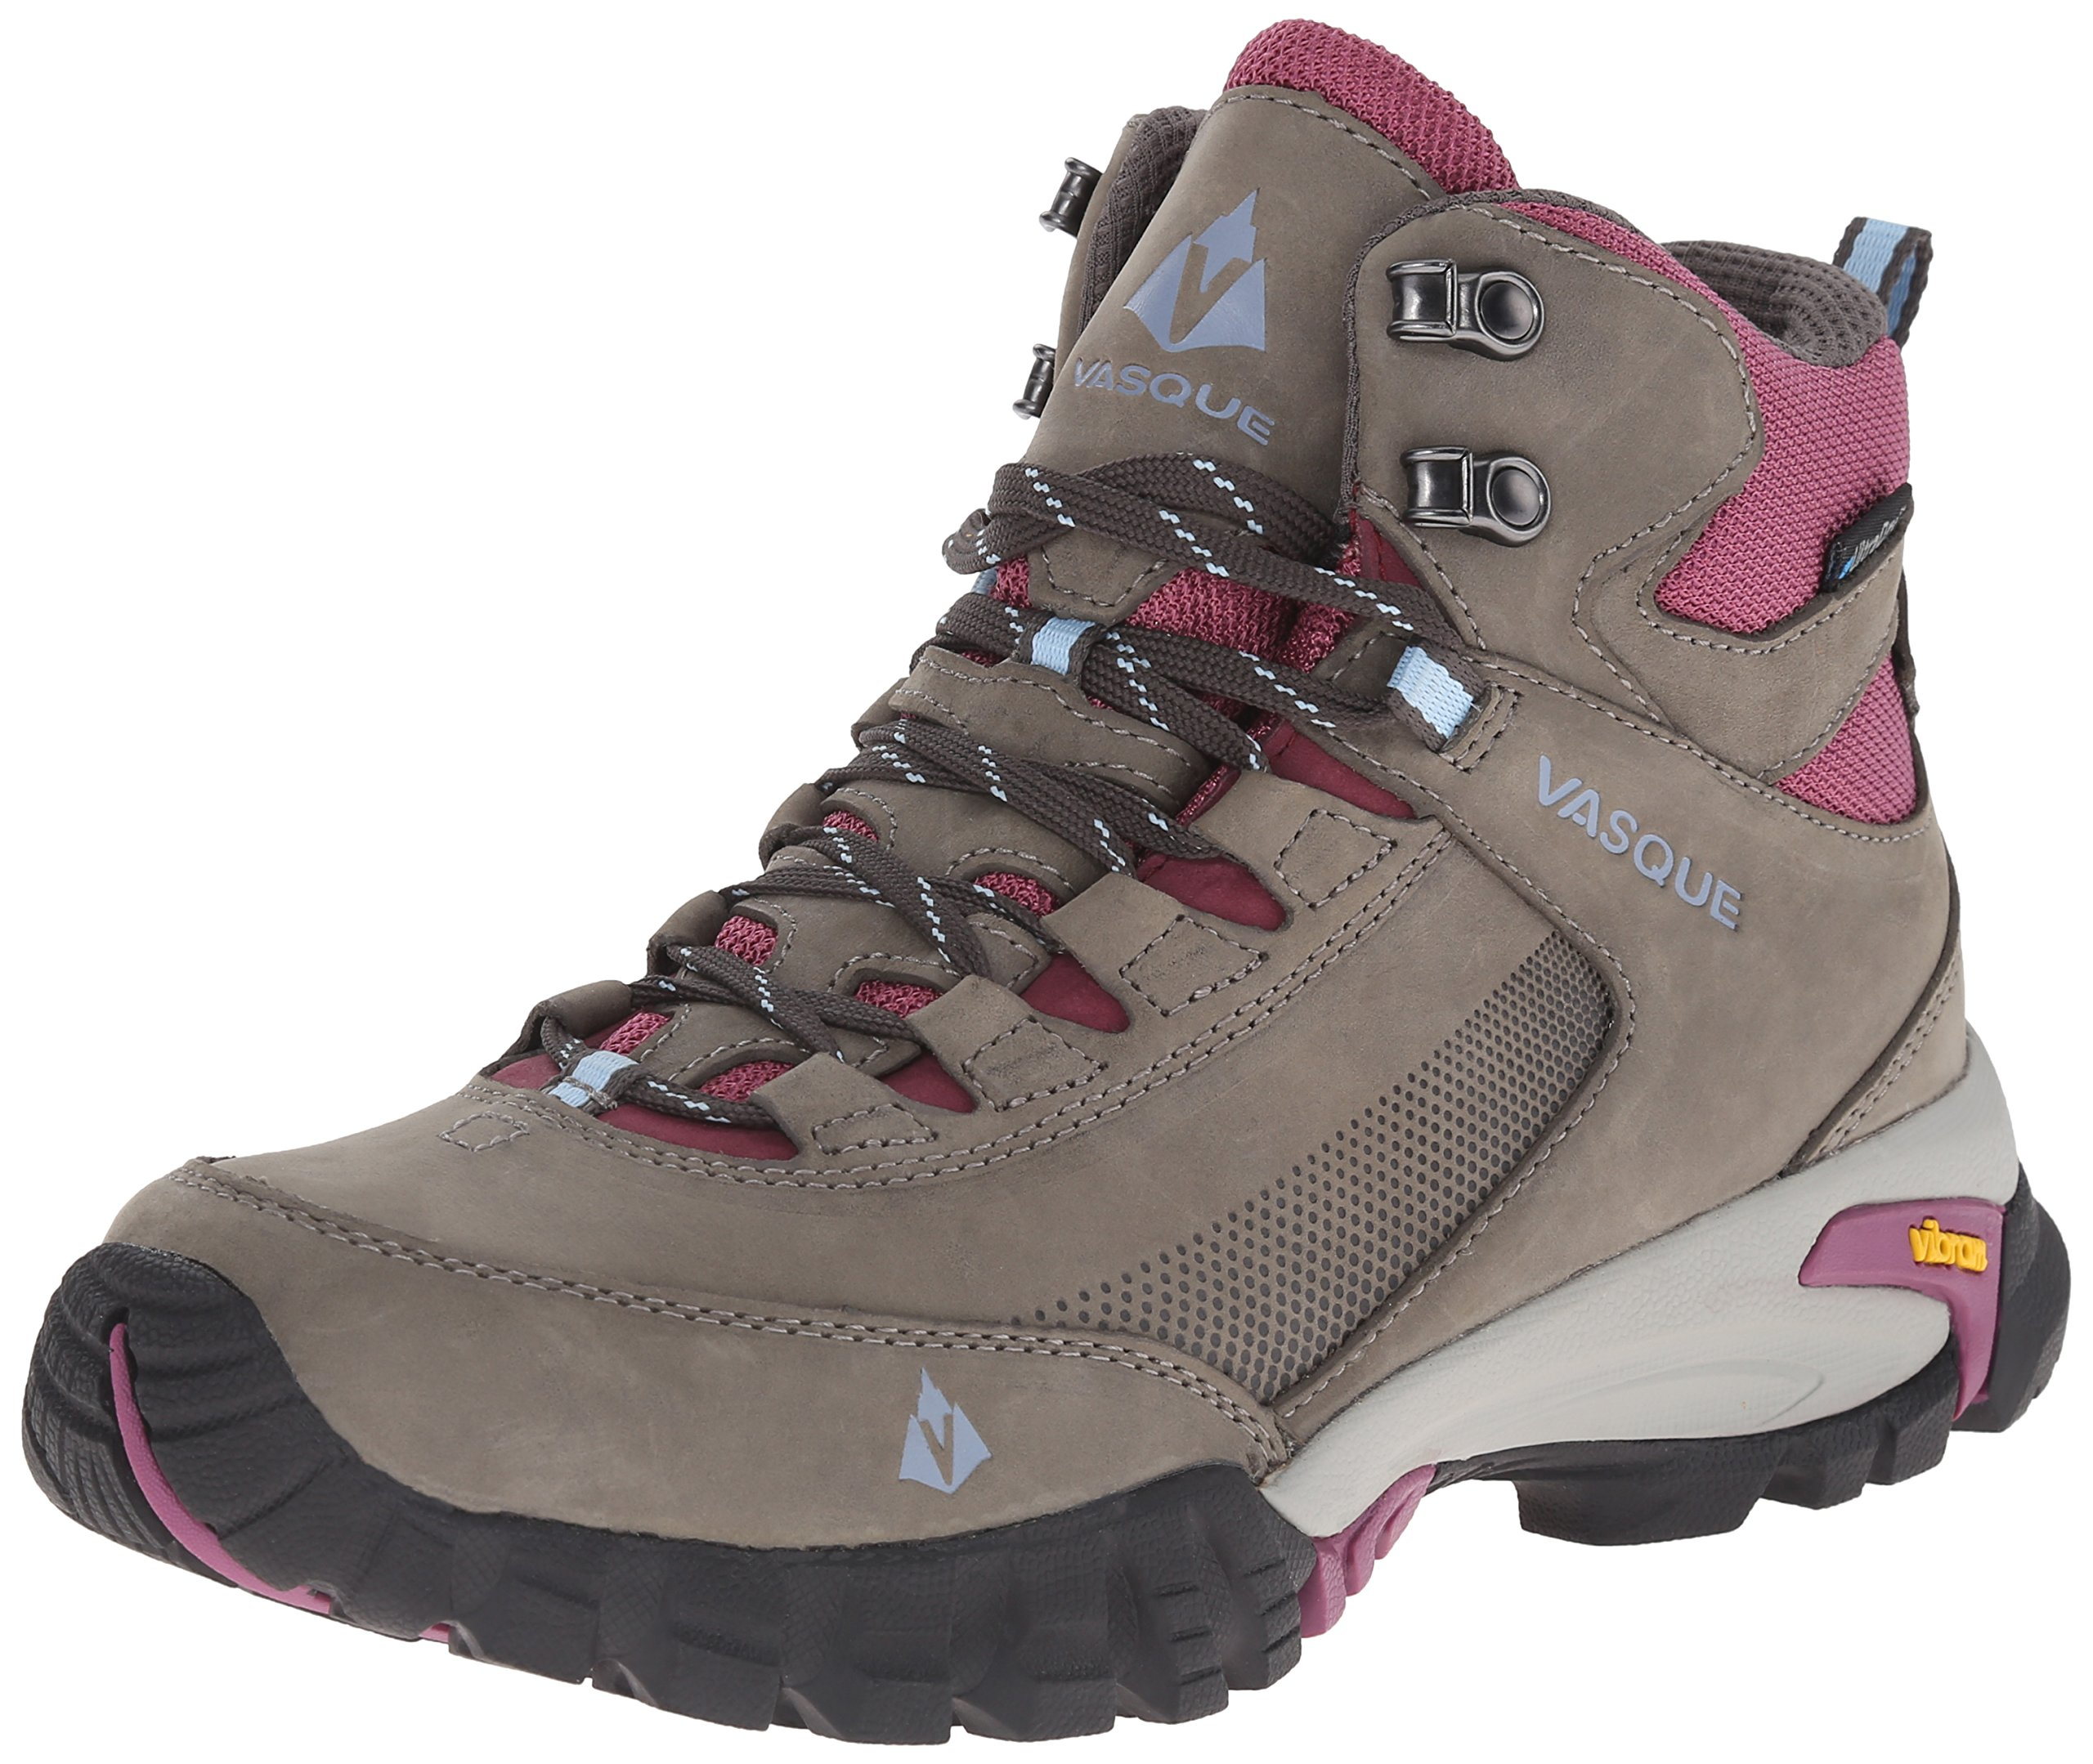 Vasque Women's Talus Trek UltraDry Hiking Boot, Gargoyle/Damson, 8 M US by Vasque